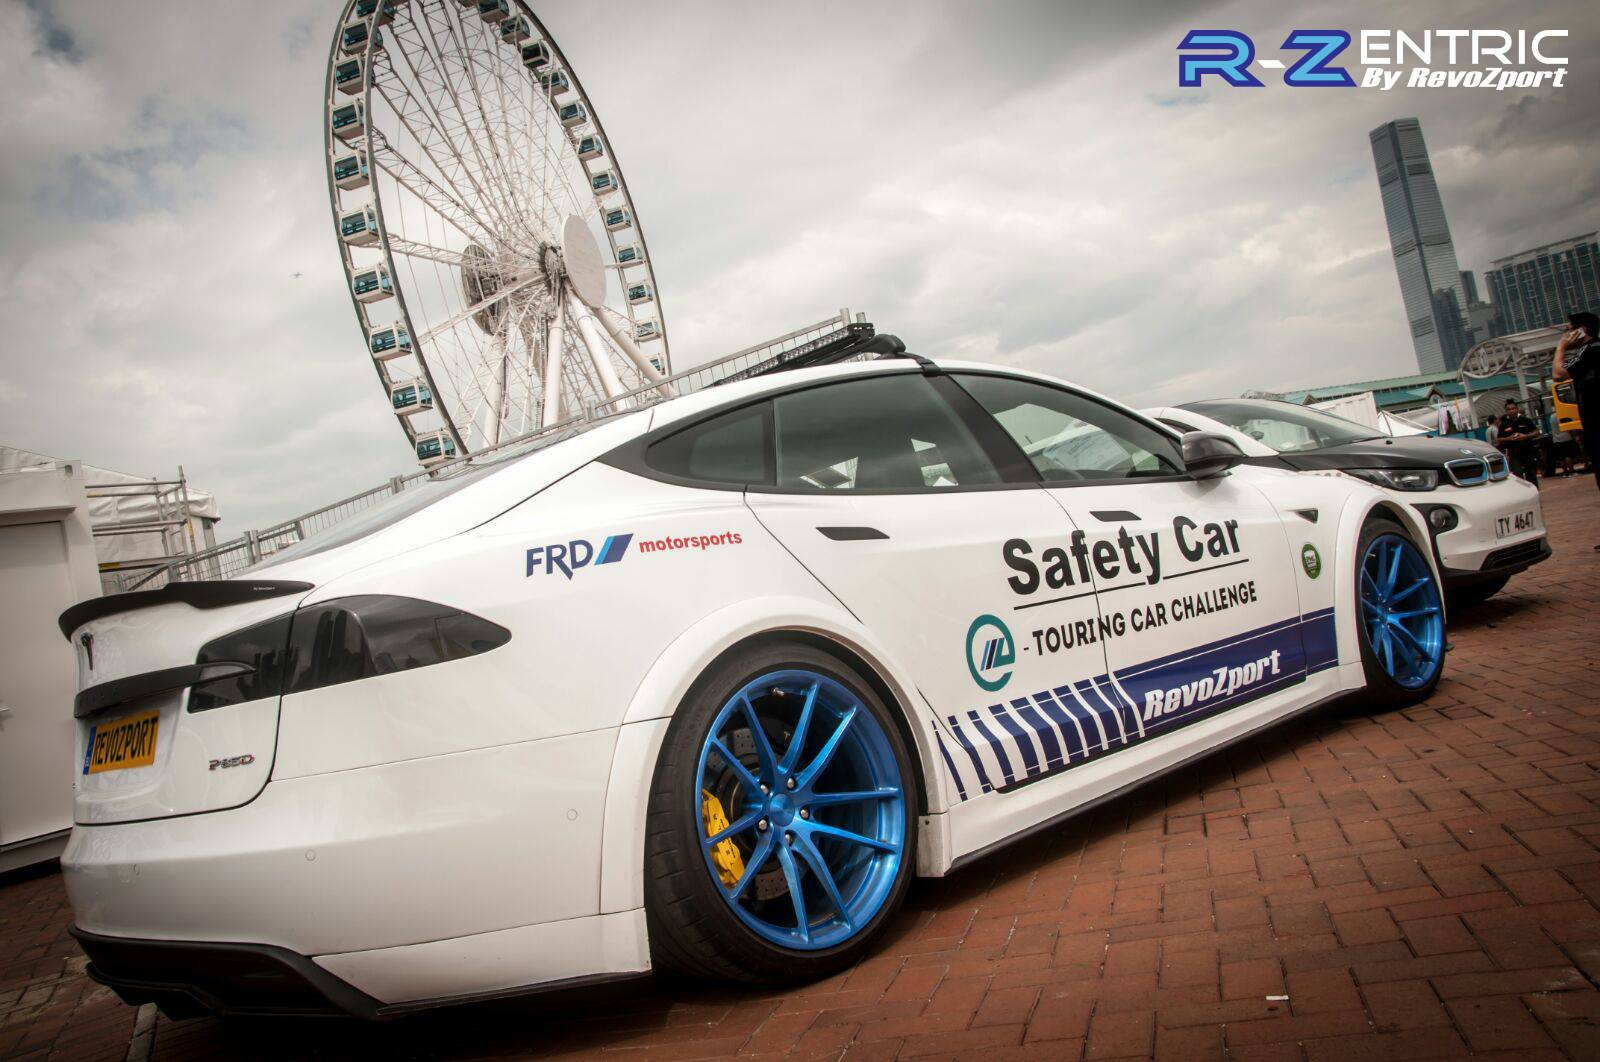 RevoZport R-Zentric Tesla Model S Formula E Safety Car